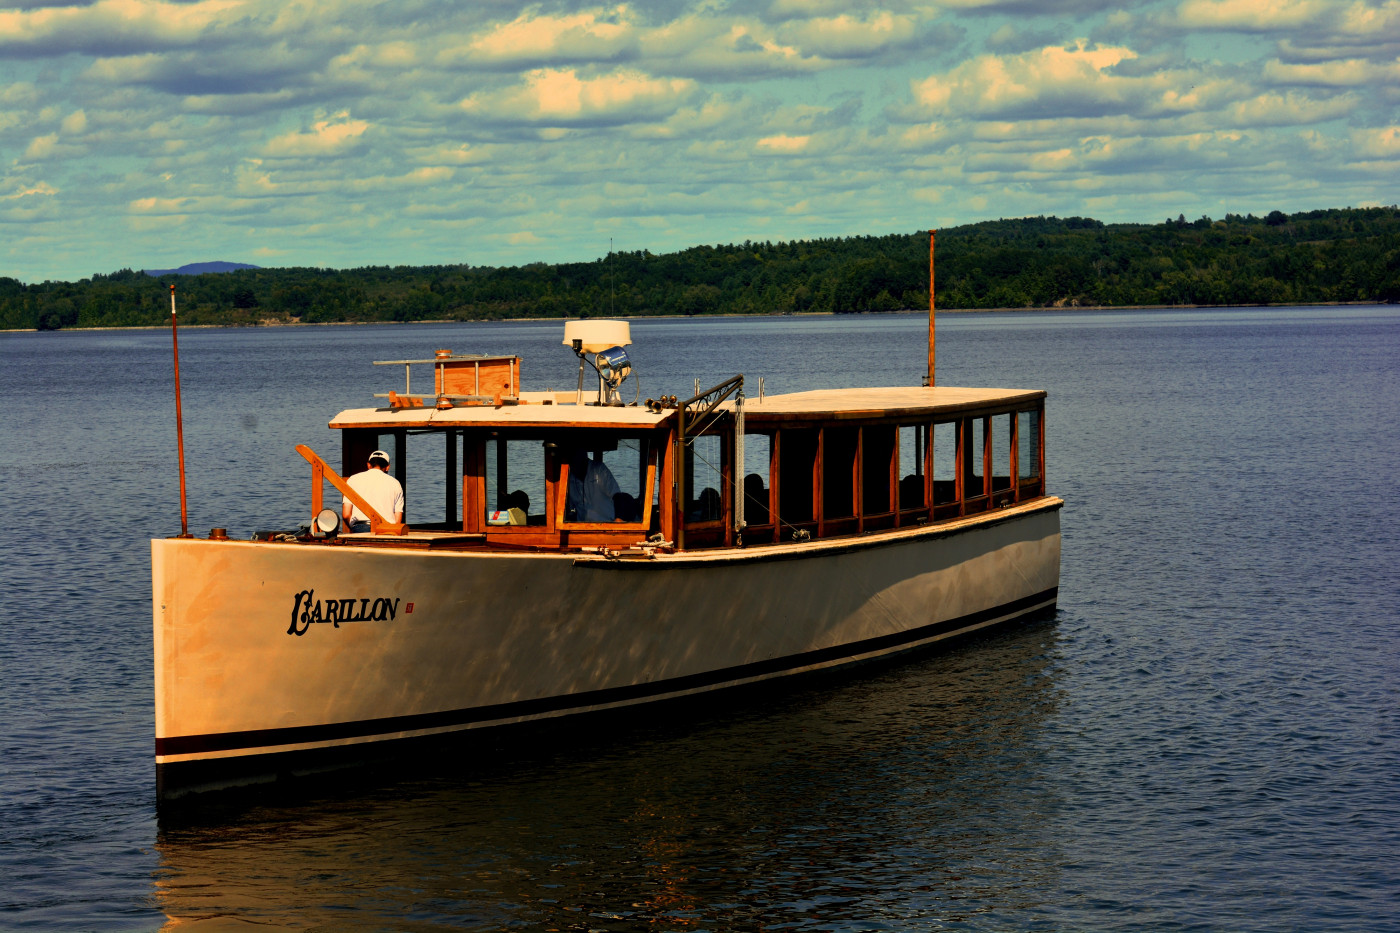 Sunset Cruise on Lake Champlain aboard the Carillon